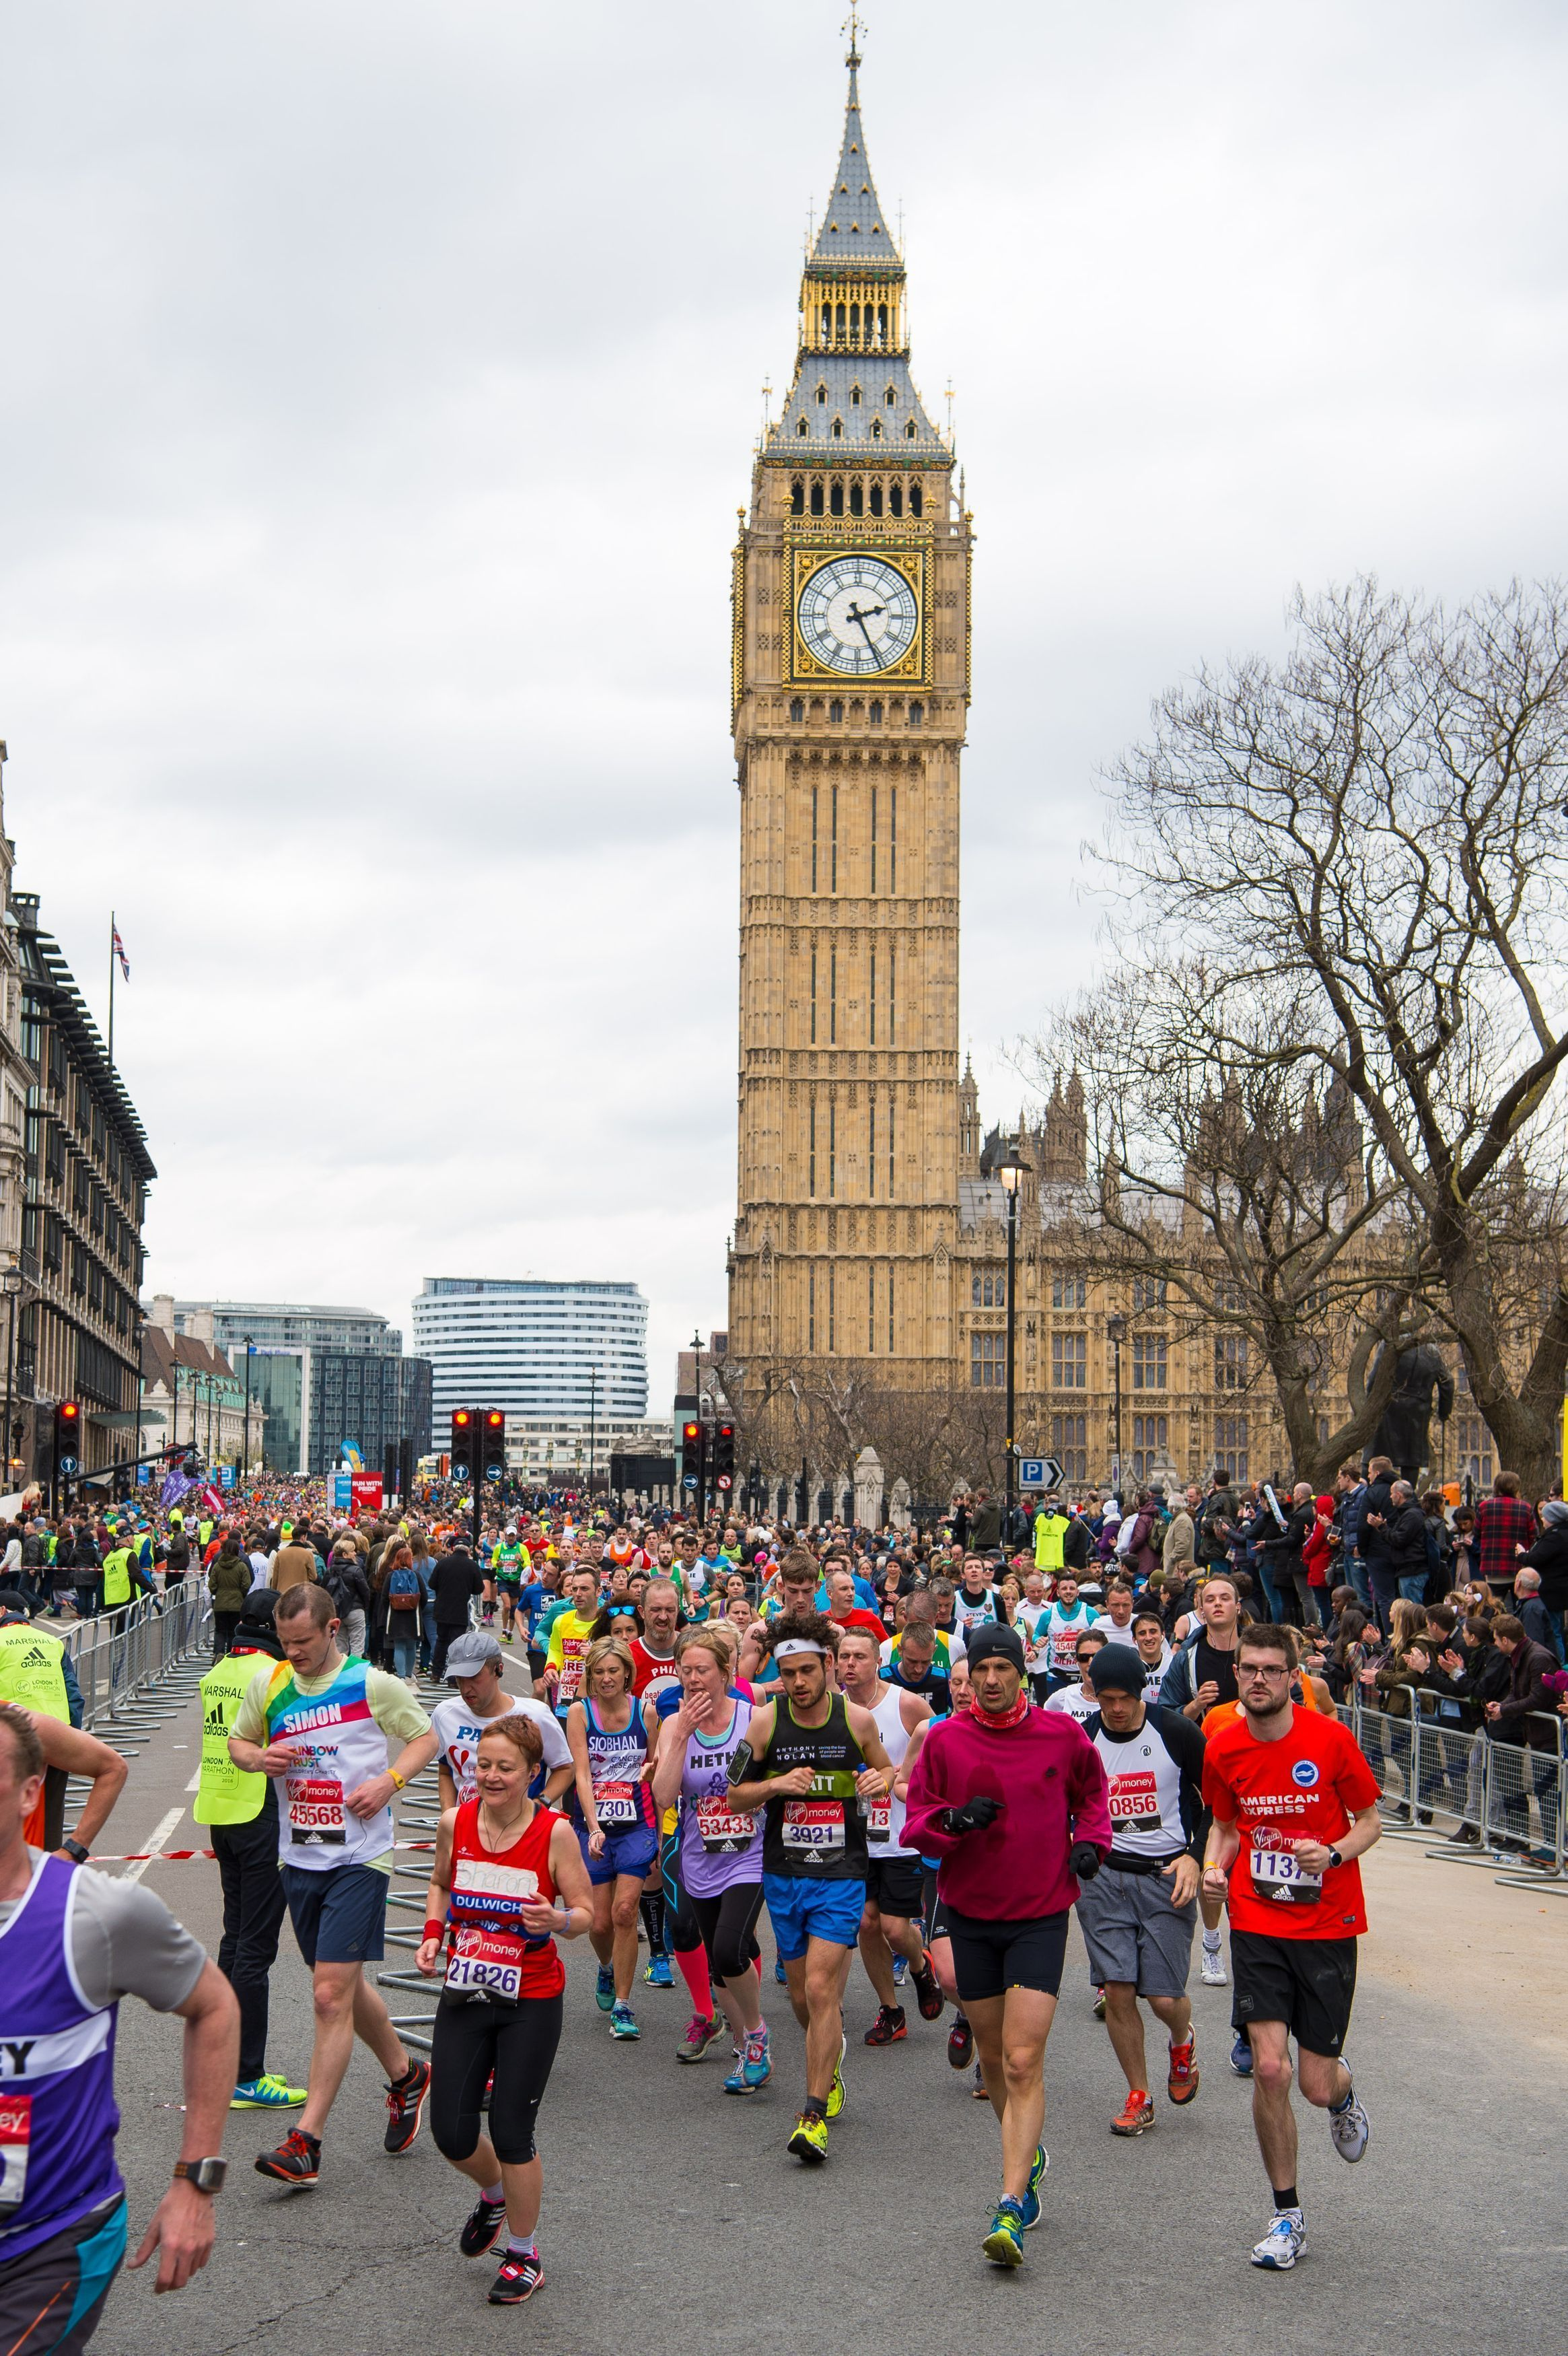 Runner pass through Parliament Square during the 2016 Virgin Money London Marathon. PRESS ASSOCIATION Photo. Picture date: Sunday April 24, 2016. See PA story ATHLETICS Marathon. Photo credit should read: Dominic Lipinski/PA Wire.